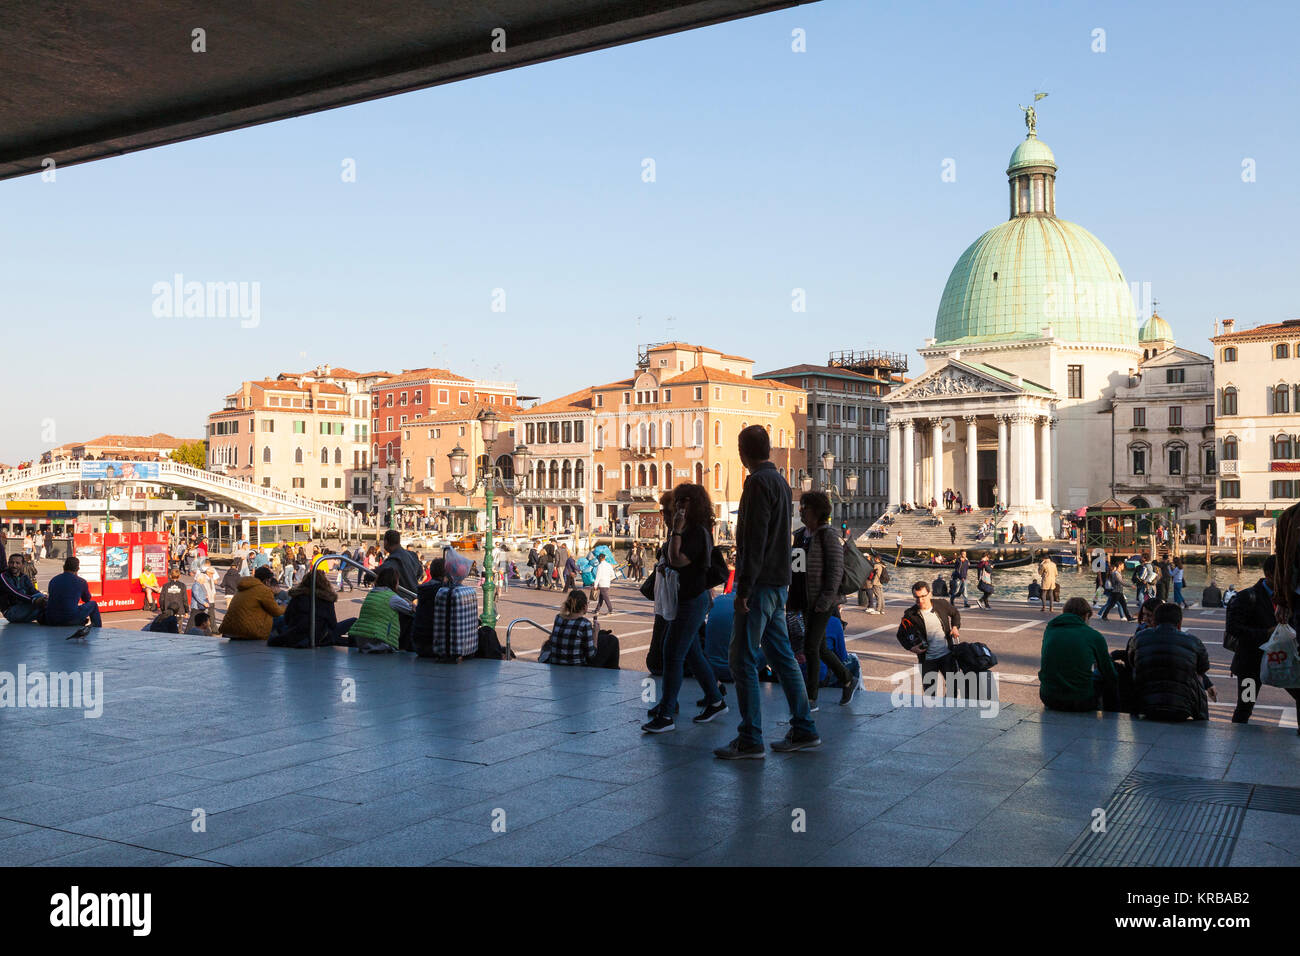 Tourists first view of Venice, Italy as they arrive by train  from the doors of Santa Lucia Railway Station looking - Stock Image